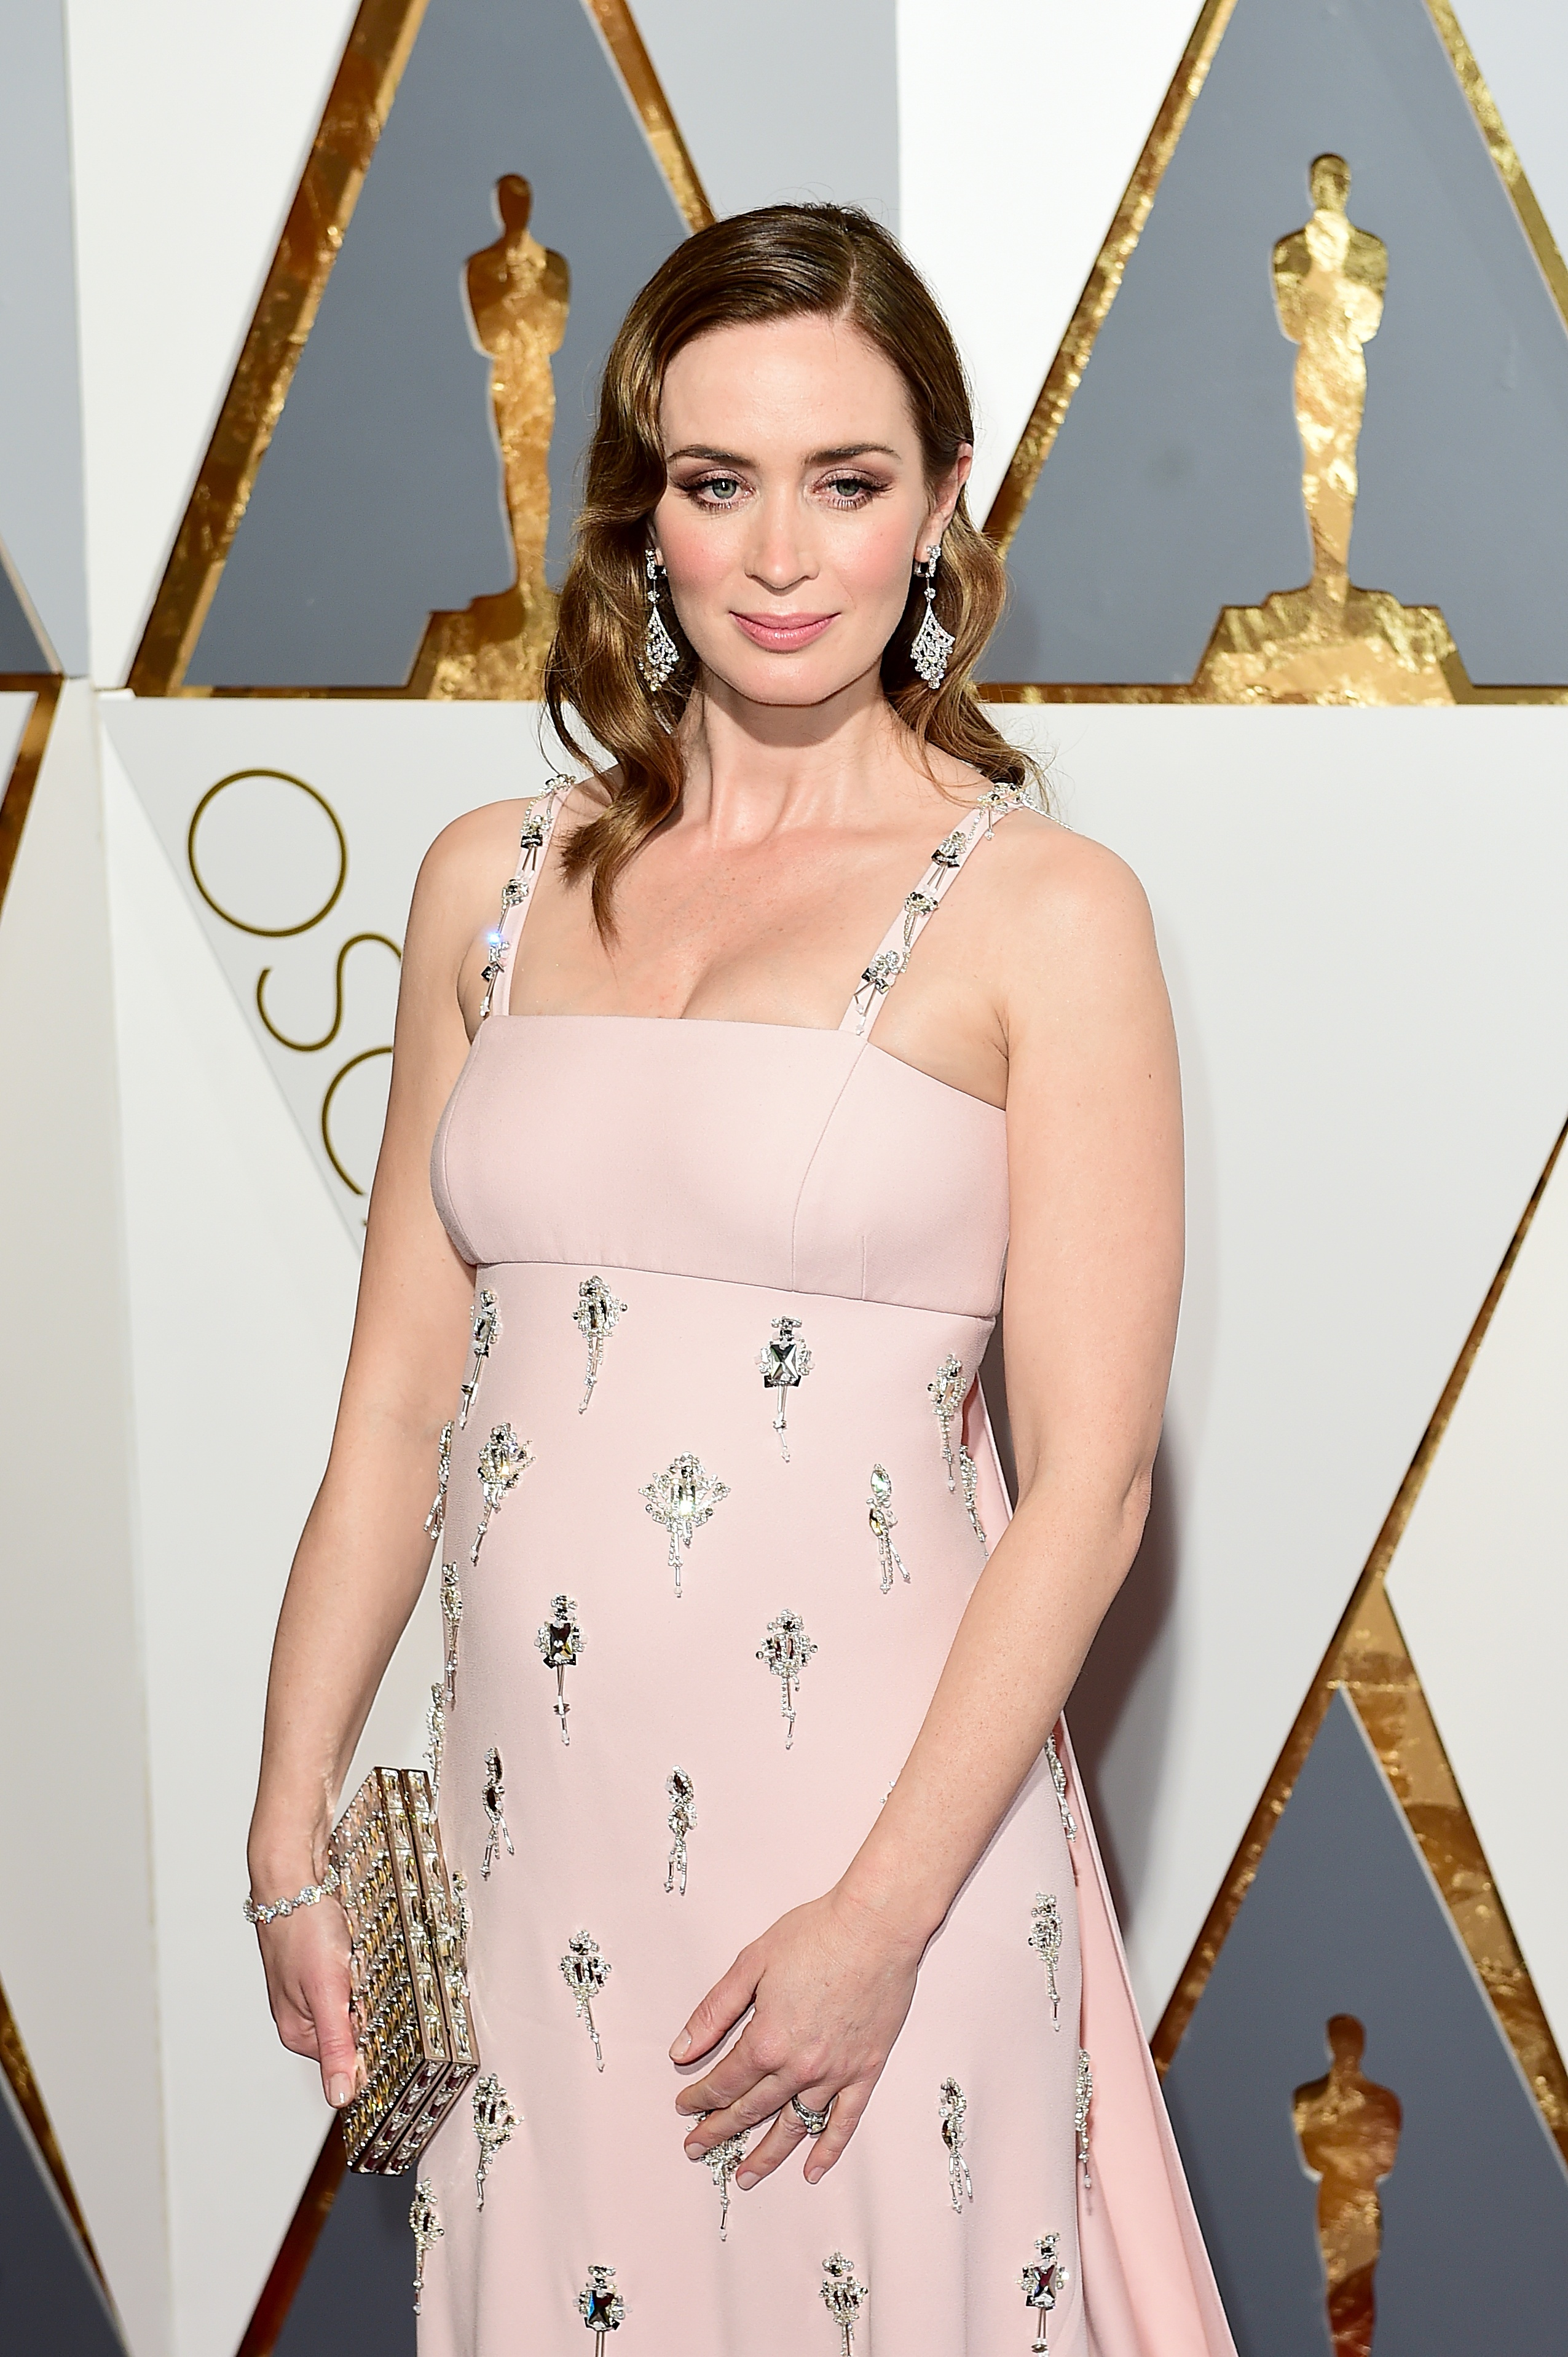 Emily Blunt at the Academy Awards